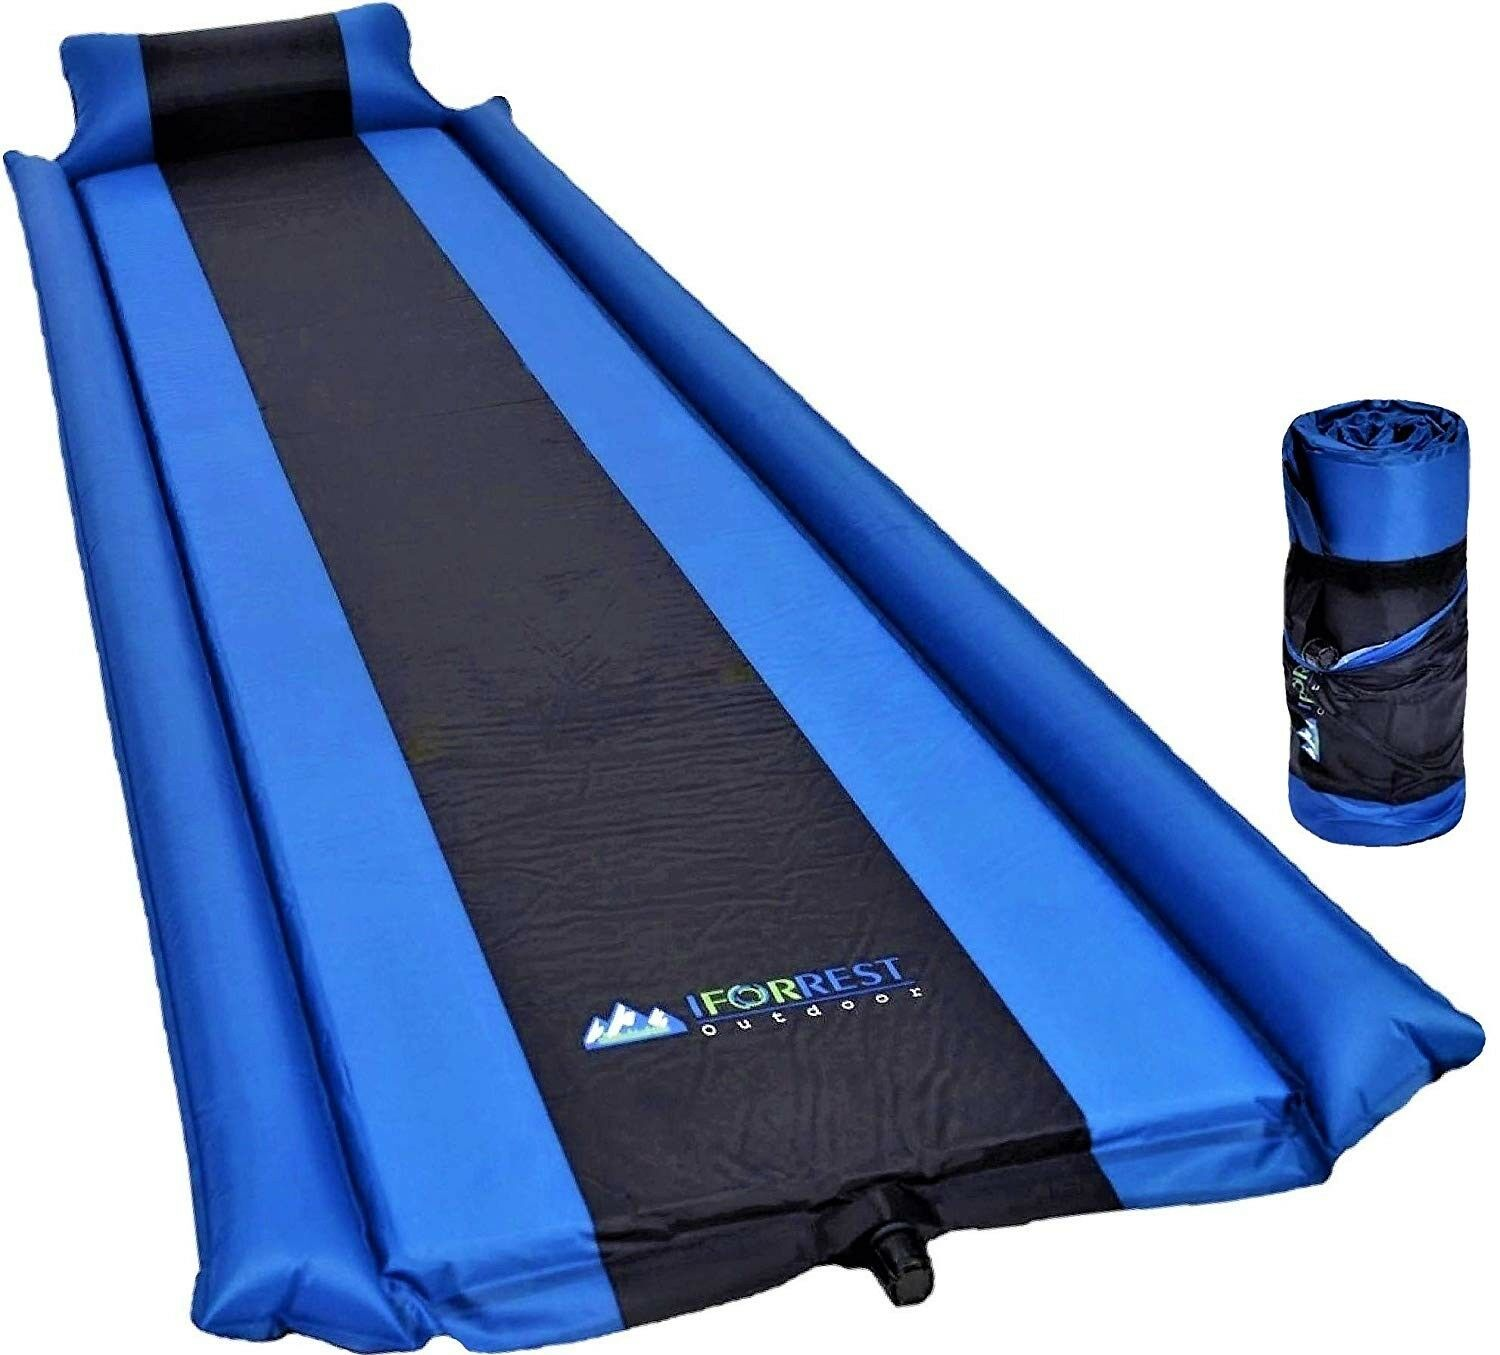 IFORREST Self-Inflating Sleeping Pad with Armrest & Pillow - Super  Comfortable A  various sizes